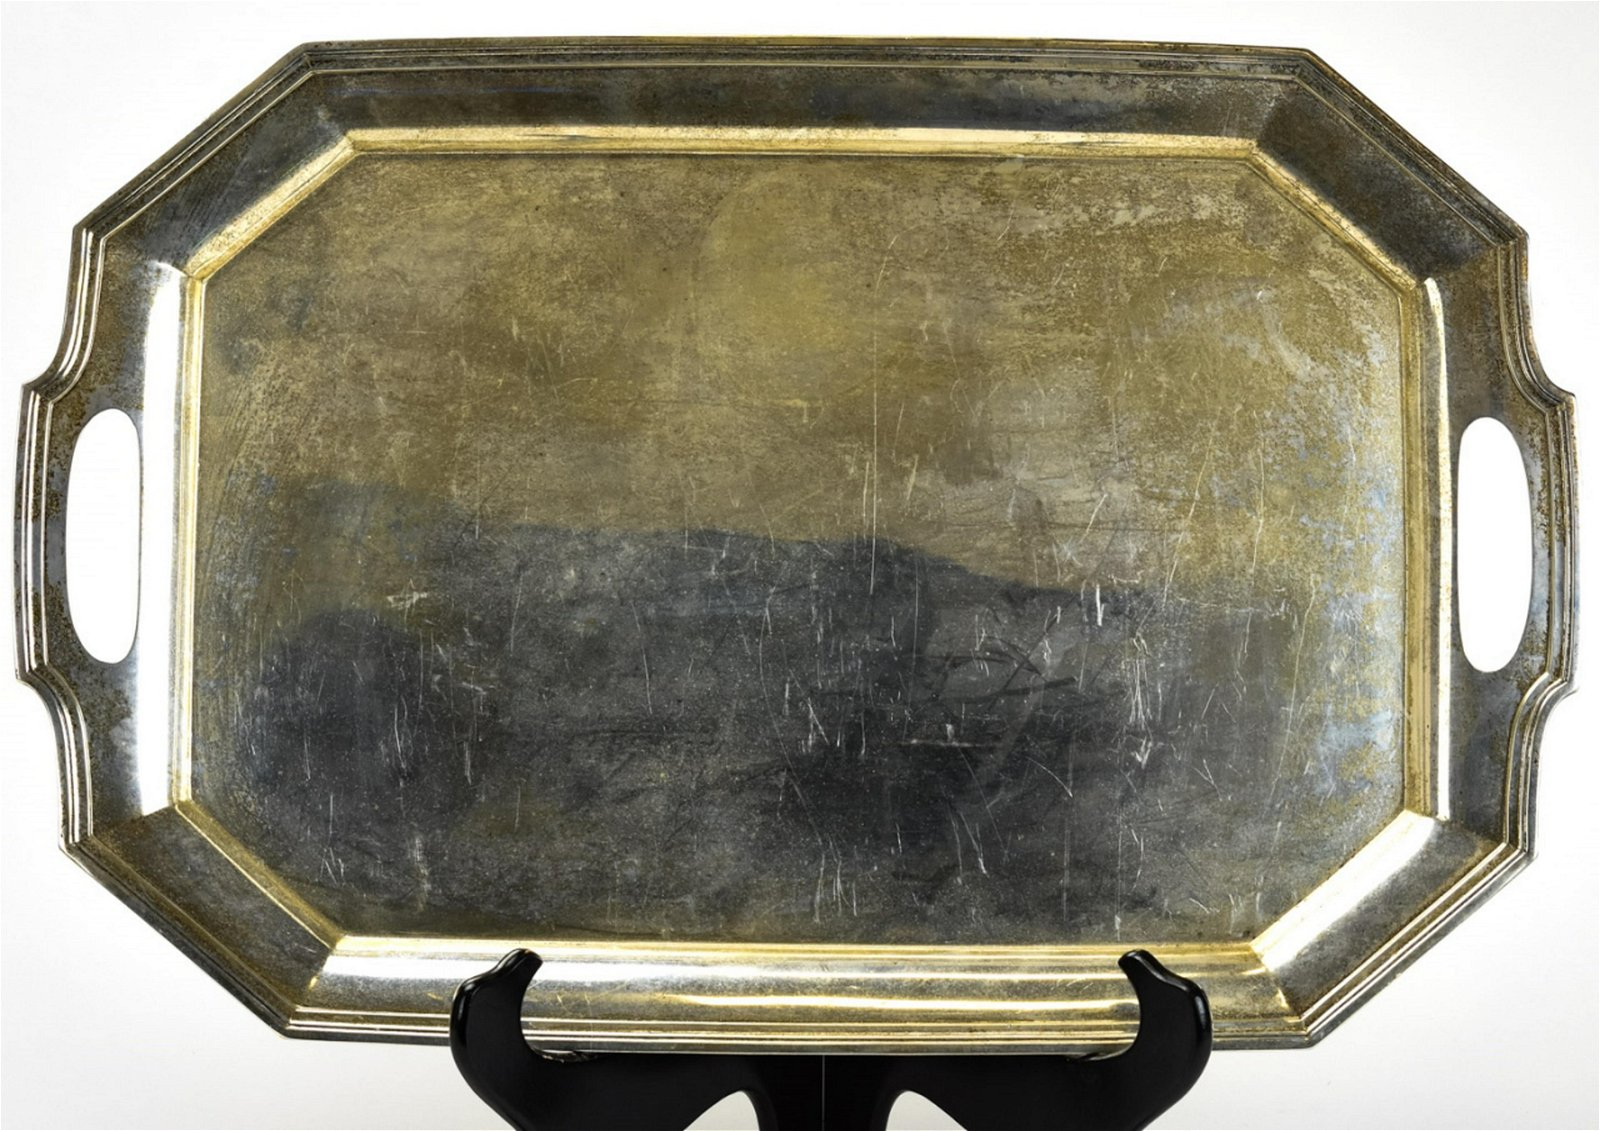 Antique Wallace Sterling Silver Serving Tray Aug 24 2019 Greenwich Auction In Ct